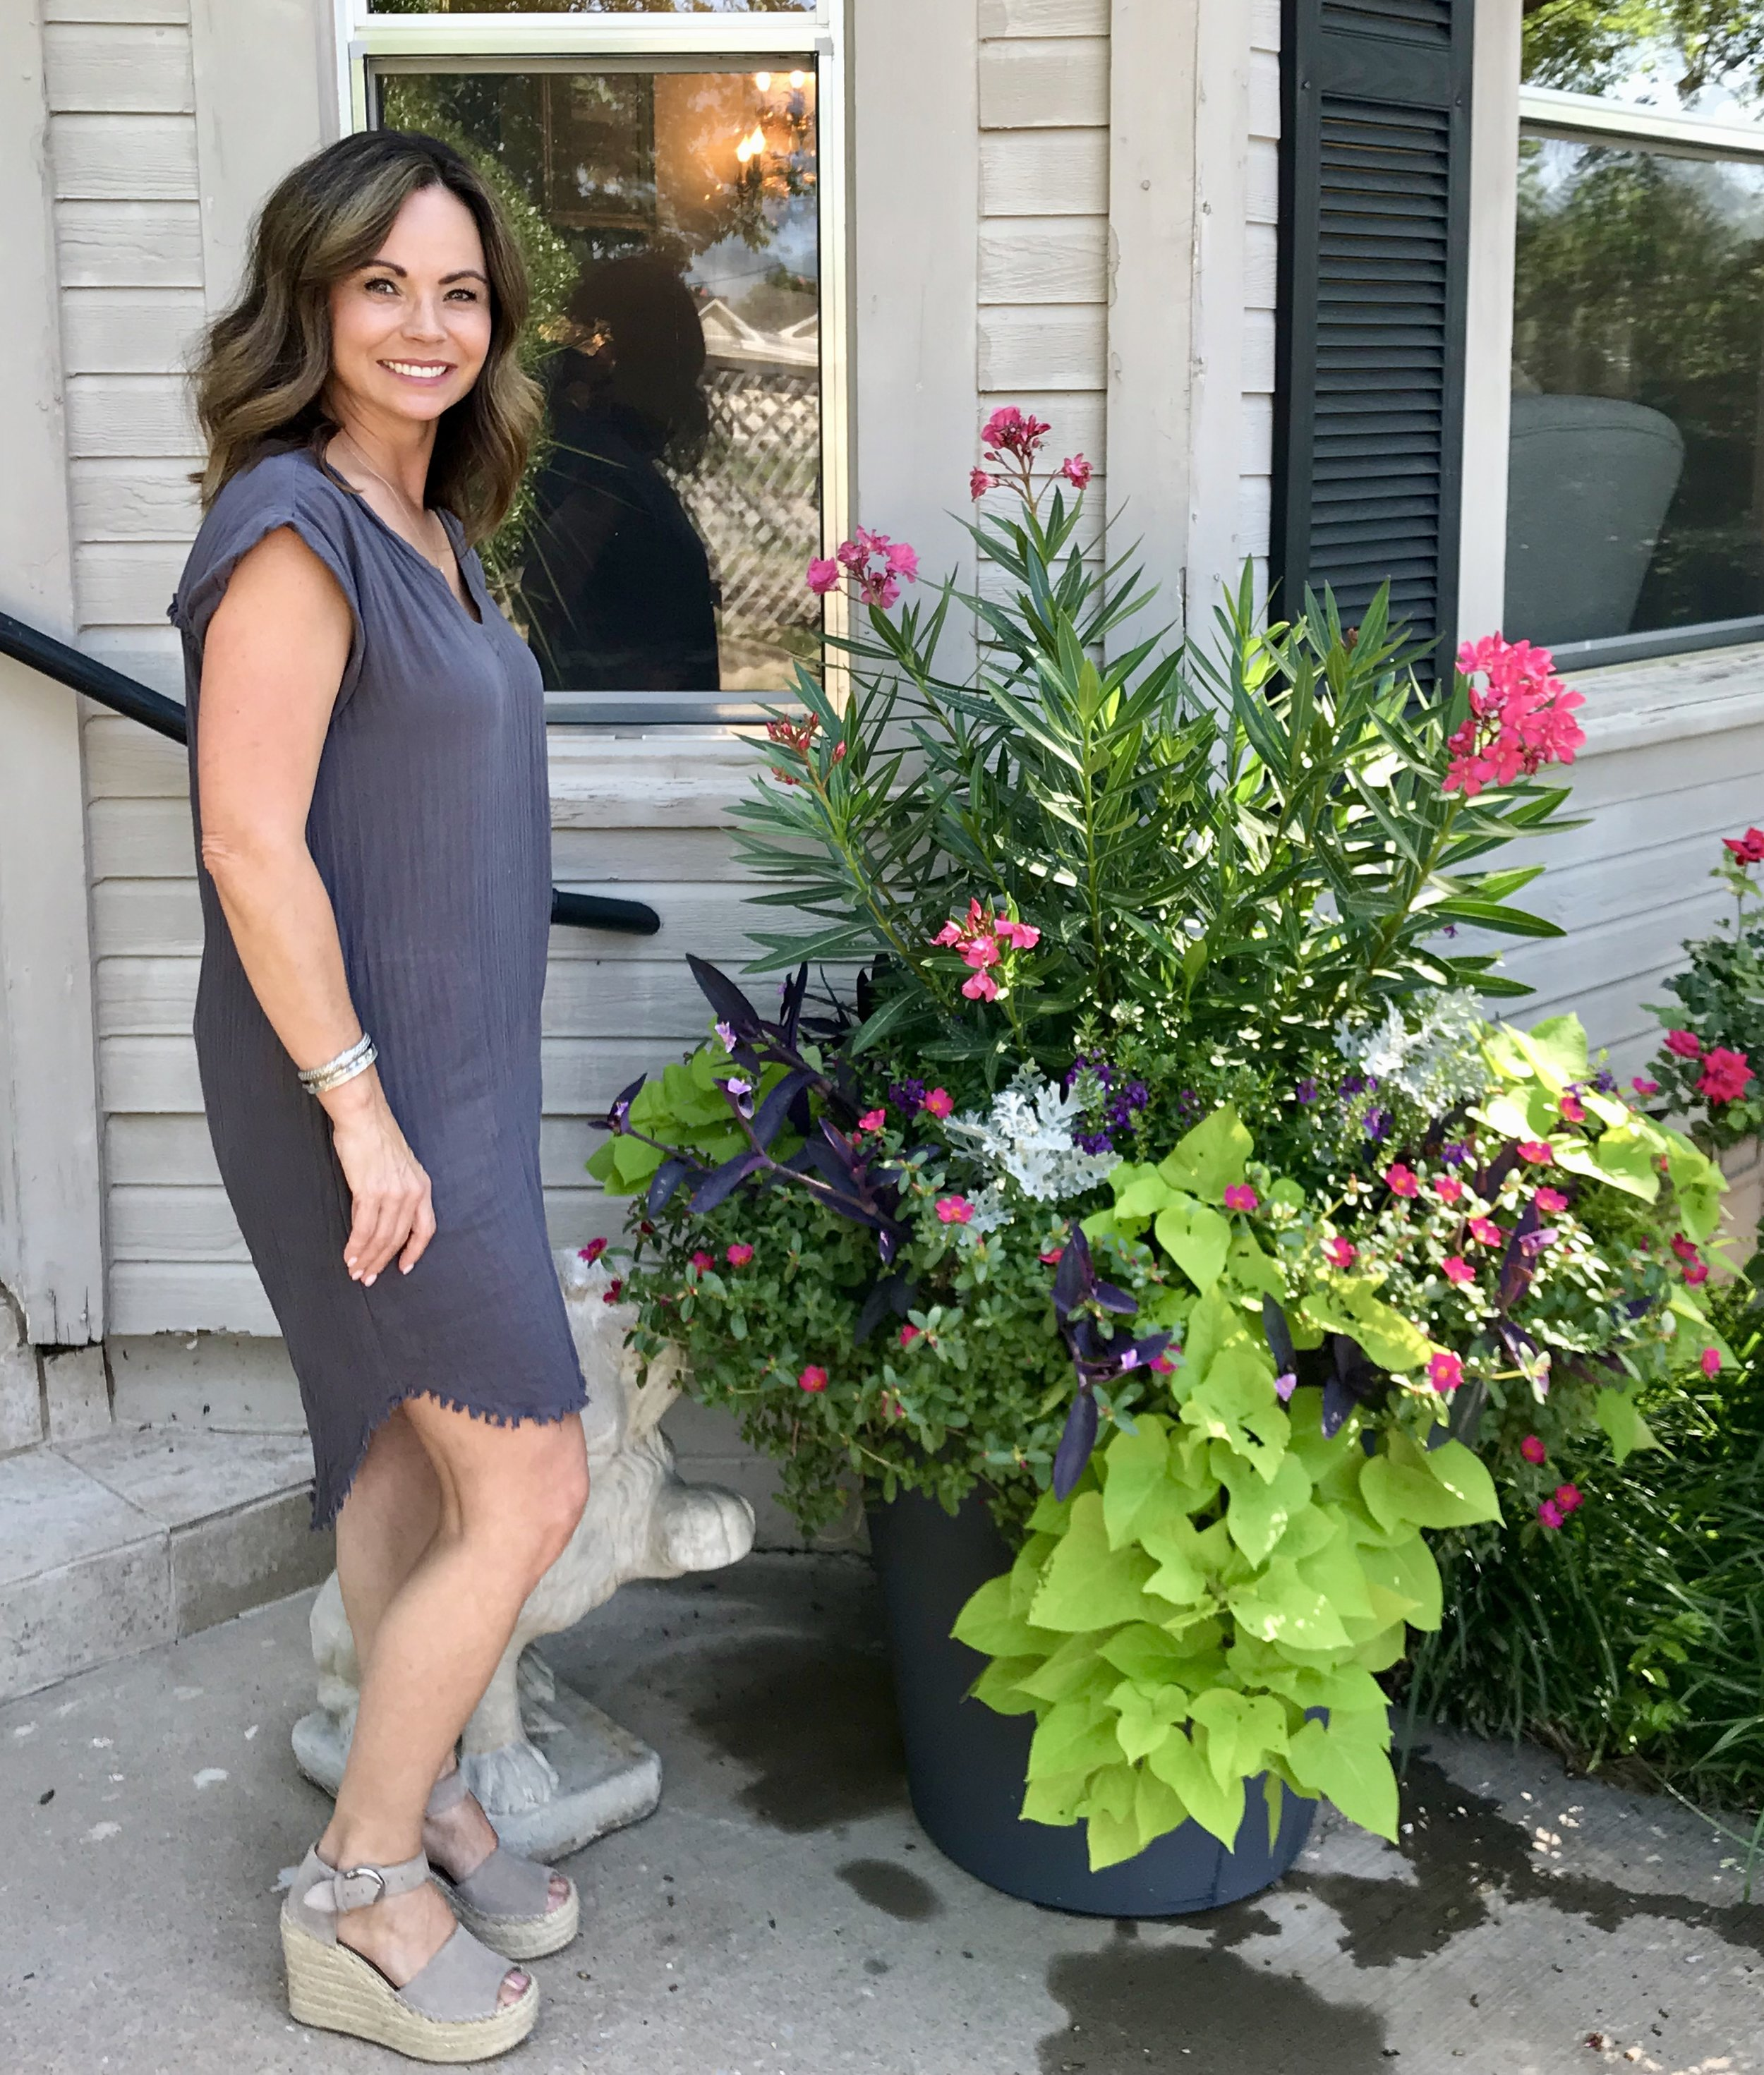 "Curb appeal shout out!    We've been helping Tammy Cole, Owner of Bella Salon in Edmond, with her outdoor planter for years. This fabulous salon is in a darling house on Broadway and 4th Street in Downtown Edmond. Hearing comments from sweet clients like Tammy makes our day. ""I love using Adorn! Elizabeth is very creative and uses some unusual things that I would never even think to use in a planter. It looks great year round even in the winter months when my pot would normally be empty. I love the convenience of knowing that it is the one thing I don't have to think about and can check off my to do list. Elizabeth is always there once a month to make sure our salon looks fresh and green.""  Awww, thanks Tammy for letting us ""adorn"" the entrance to your salon. We appreciate your love of curb appeal!"